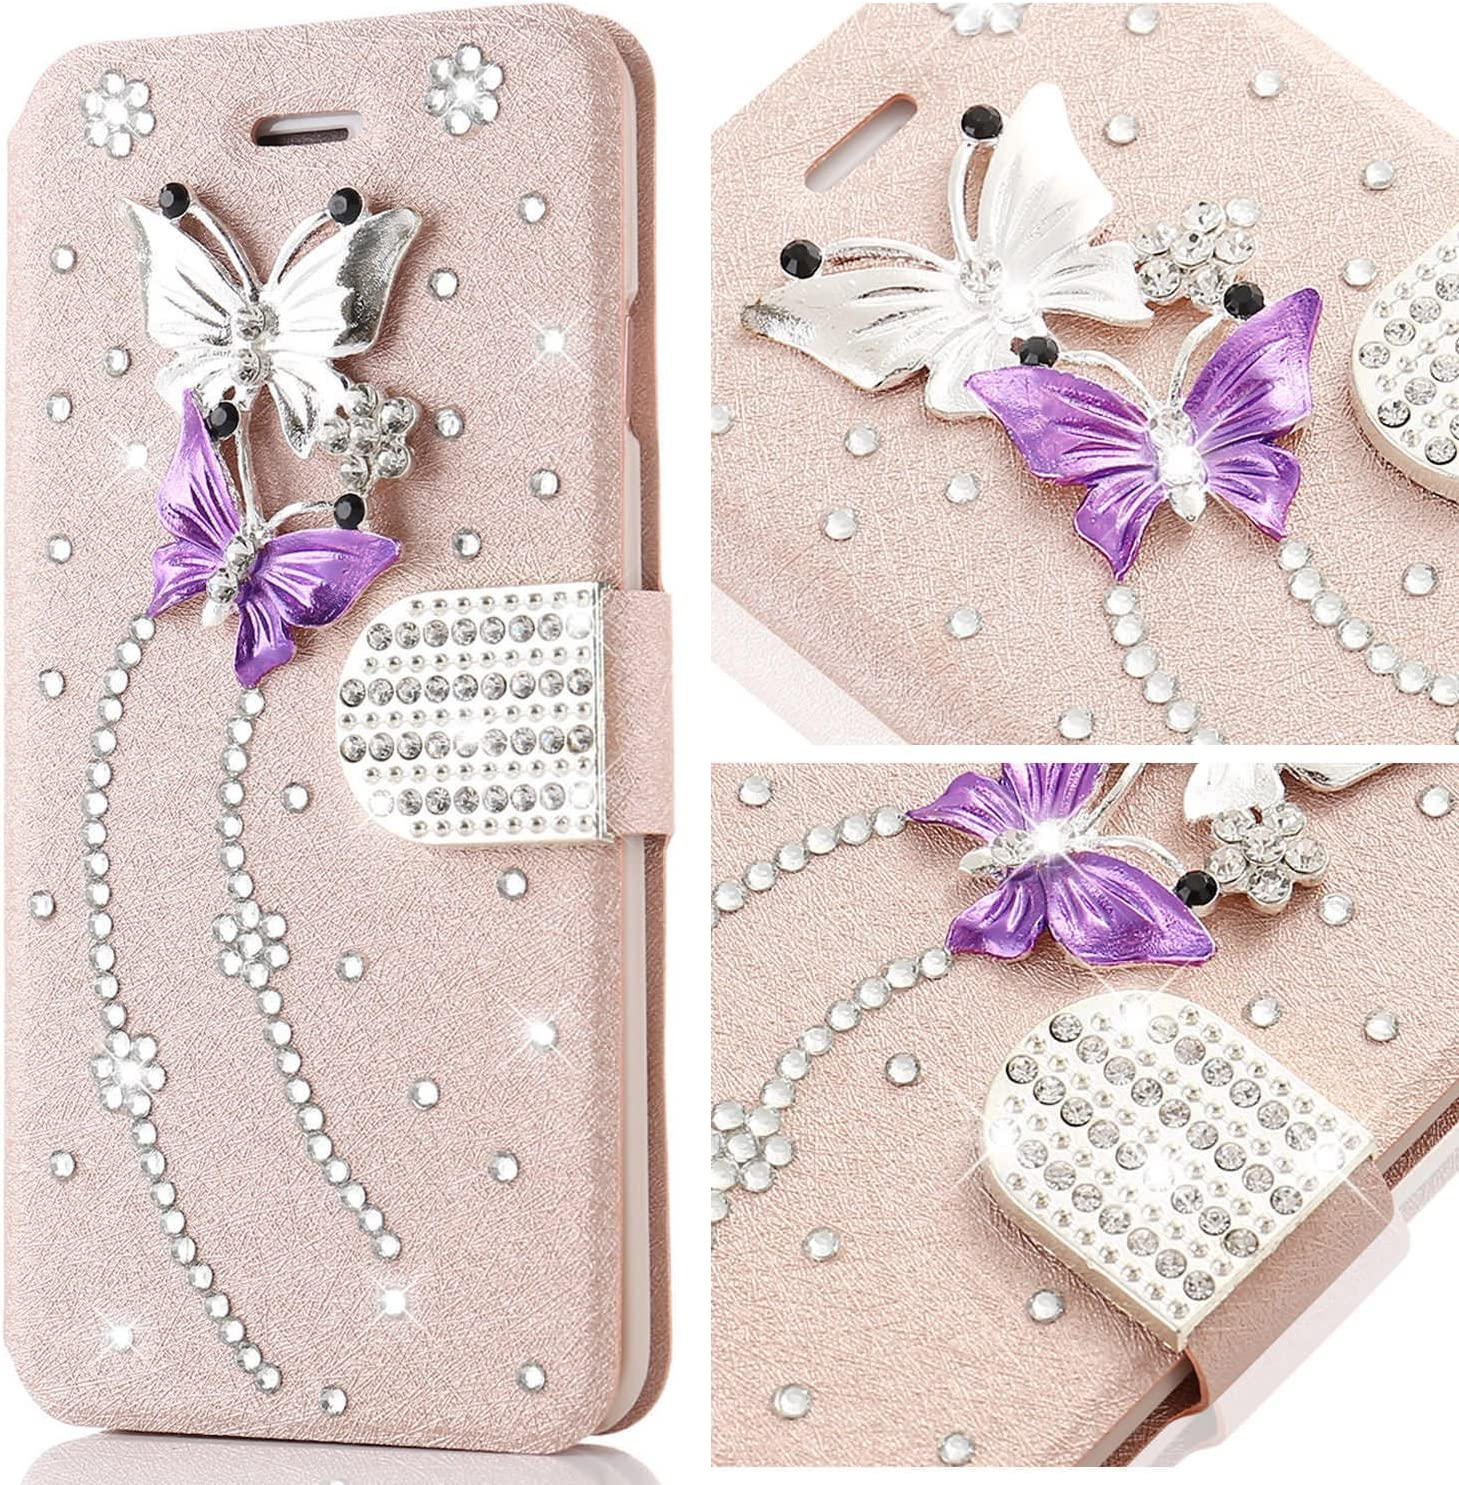 for iPhone 7 Plus Case,L-FADNUT Bling Jewellery Crystal Rhinestone Flip PU Leather Case,3D Butterfly Magnetic Diamond Buckle with Stand Wallet Card Holder for iPhone 7 Plus 5.5 inch - Rose Gold